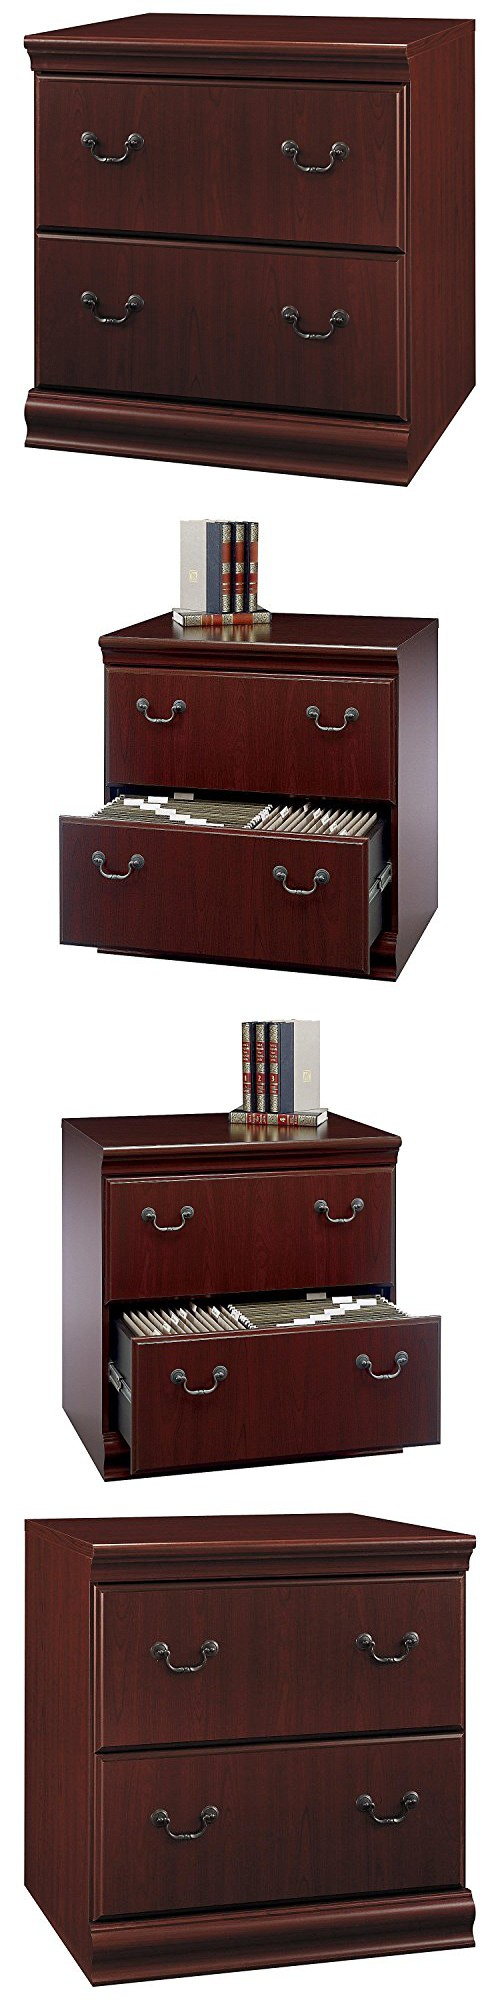 Bush Furniture Birmingham Lateral File Cabinet, Harvest Cherry